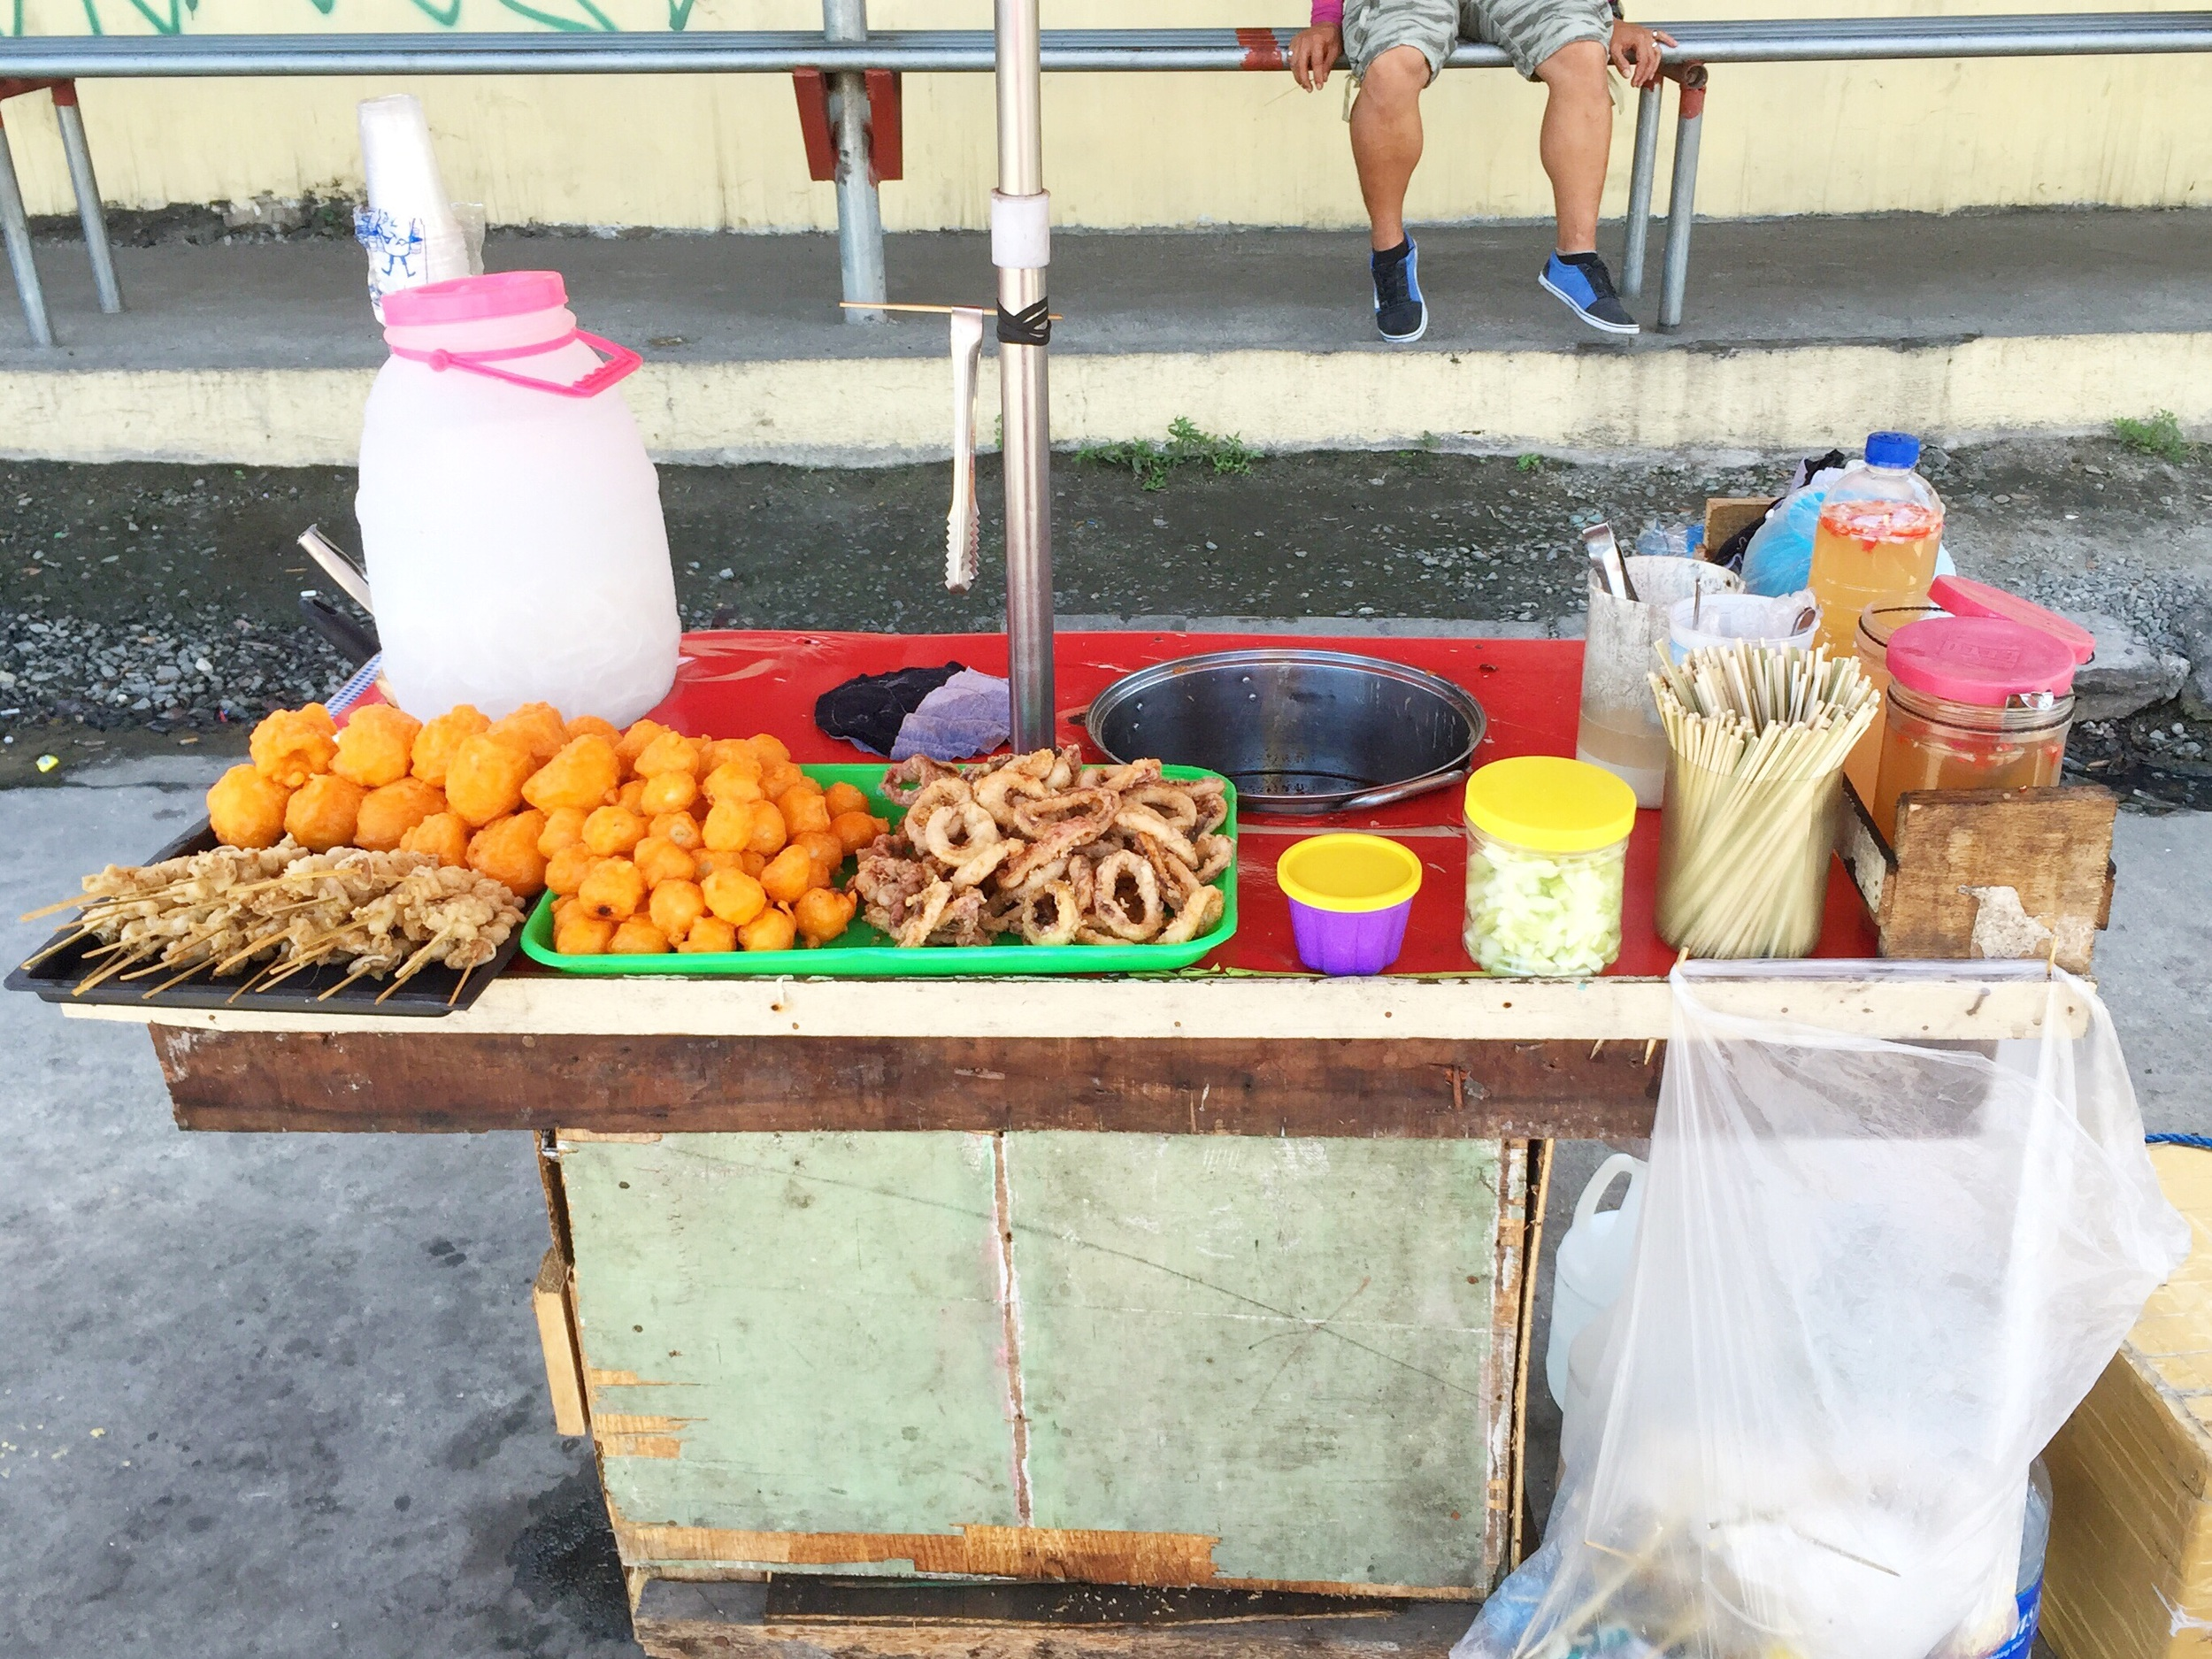 Street food. Not for the faint of stomach.